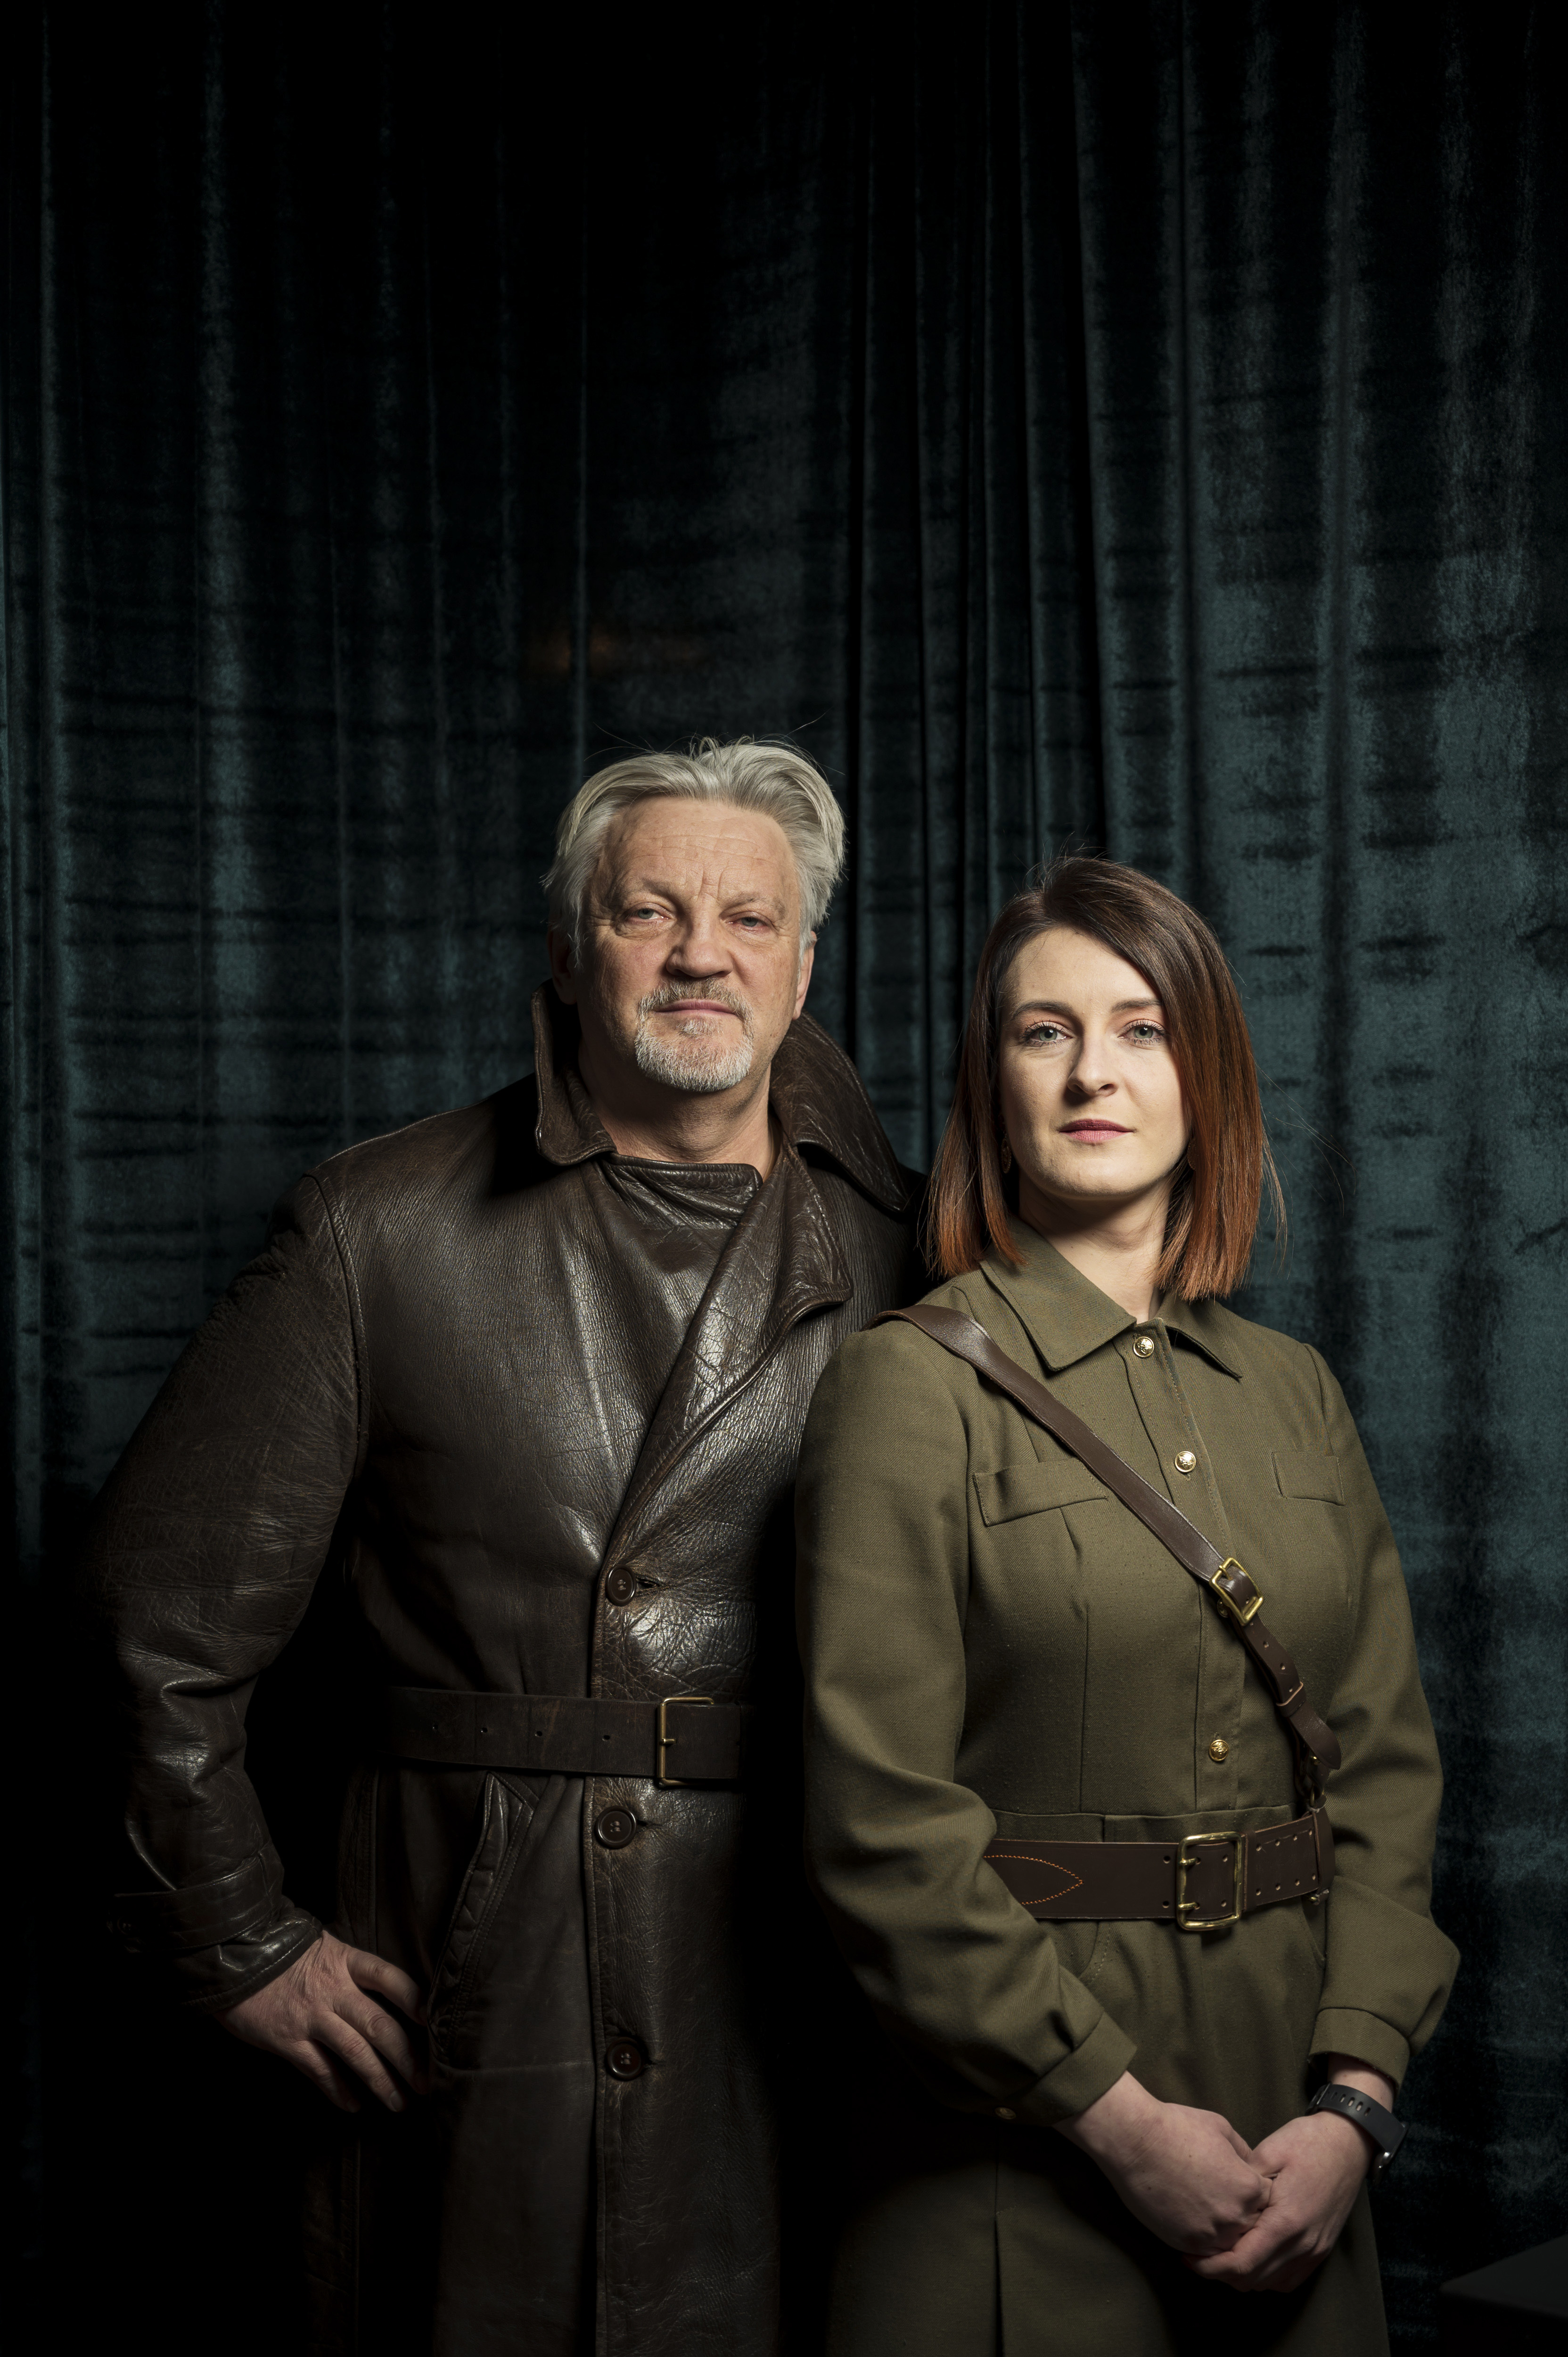 The father-daughter duo of Julius Urbaitis and Agne Urbaityte, the curators of the KGB Spy Museum in New York.